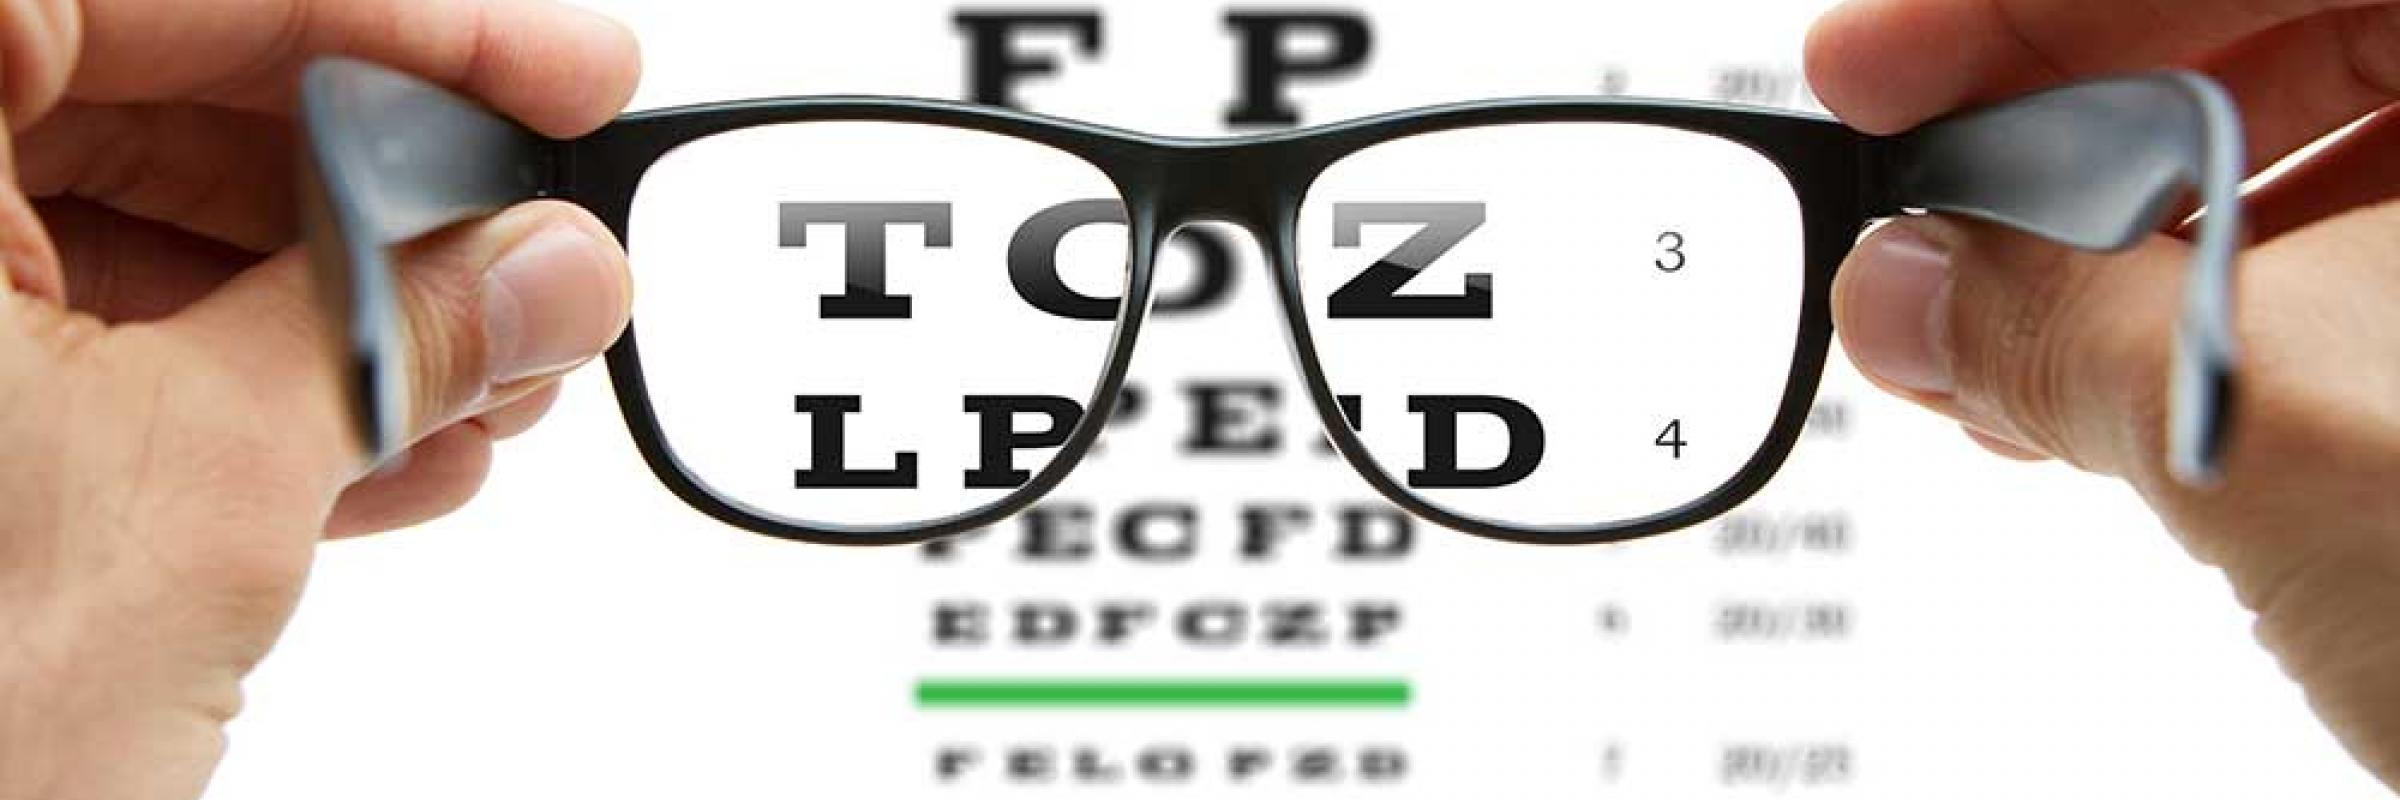 Eye Care in Florida - optometrists, opticians, and ophthalmologists